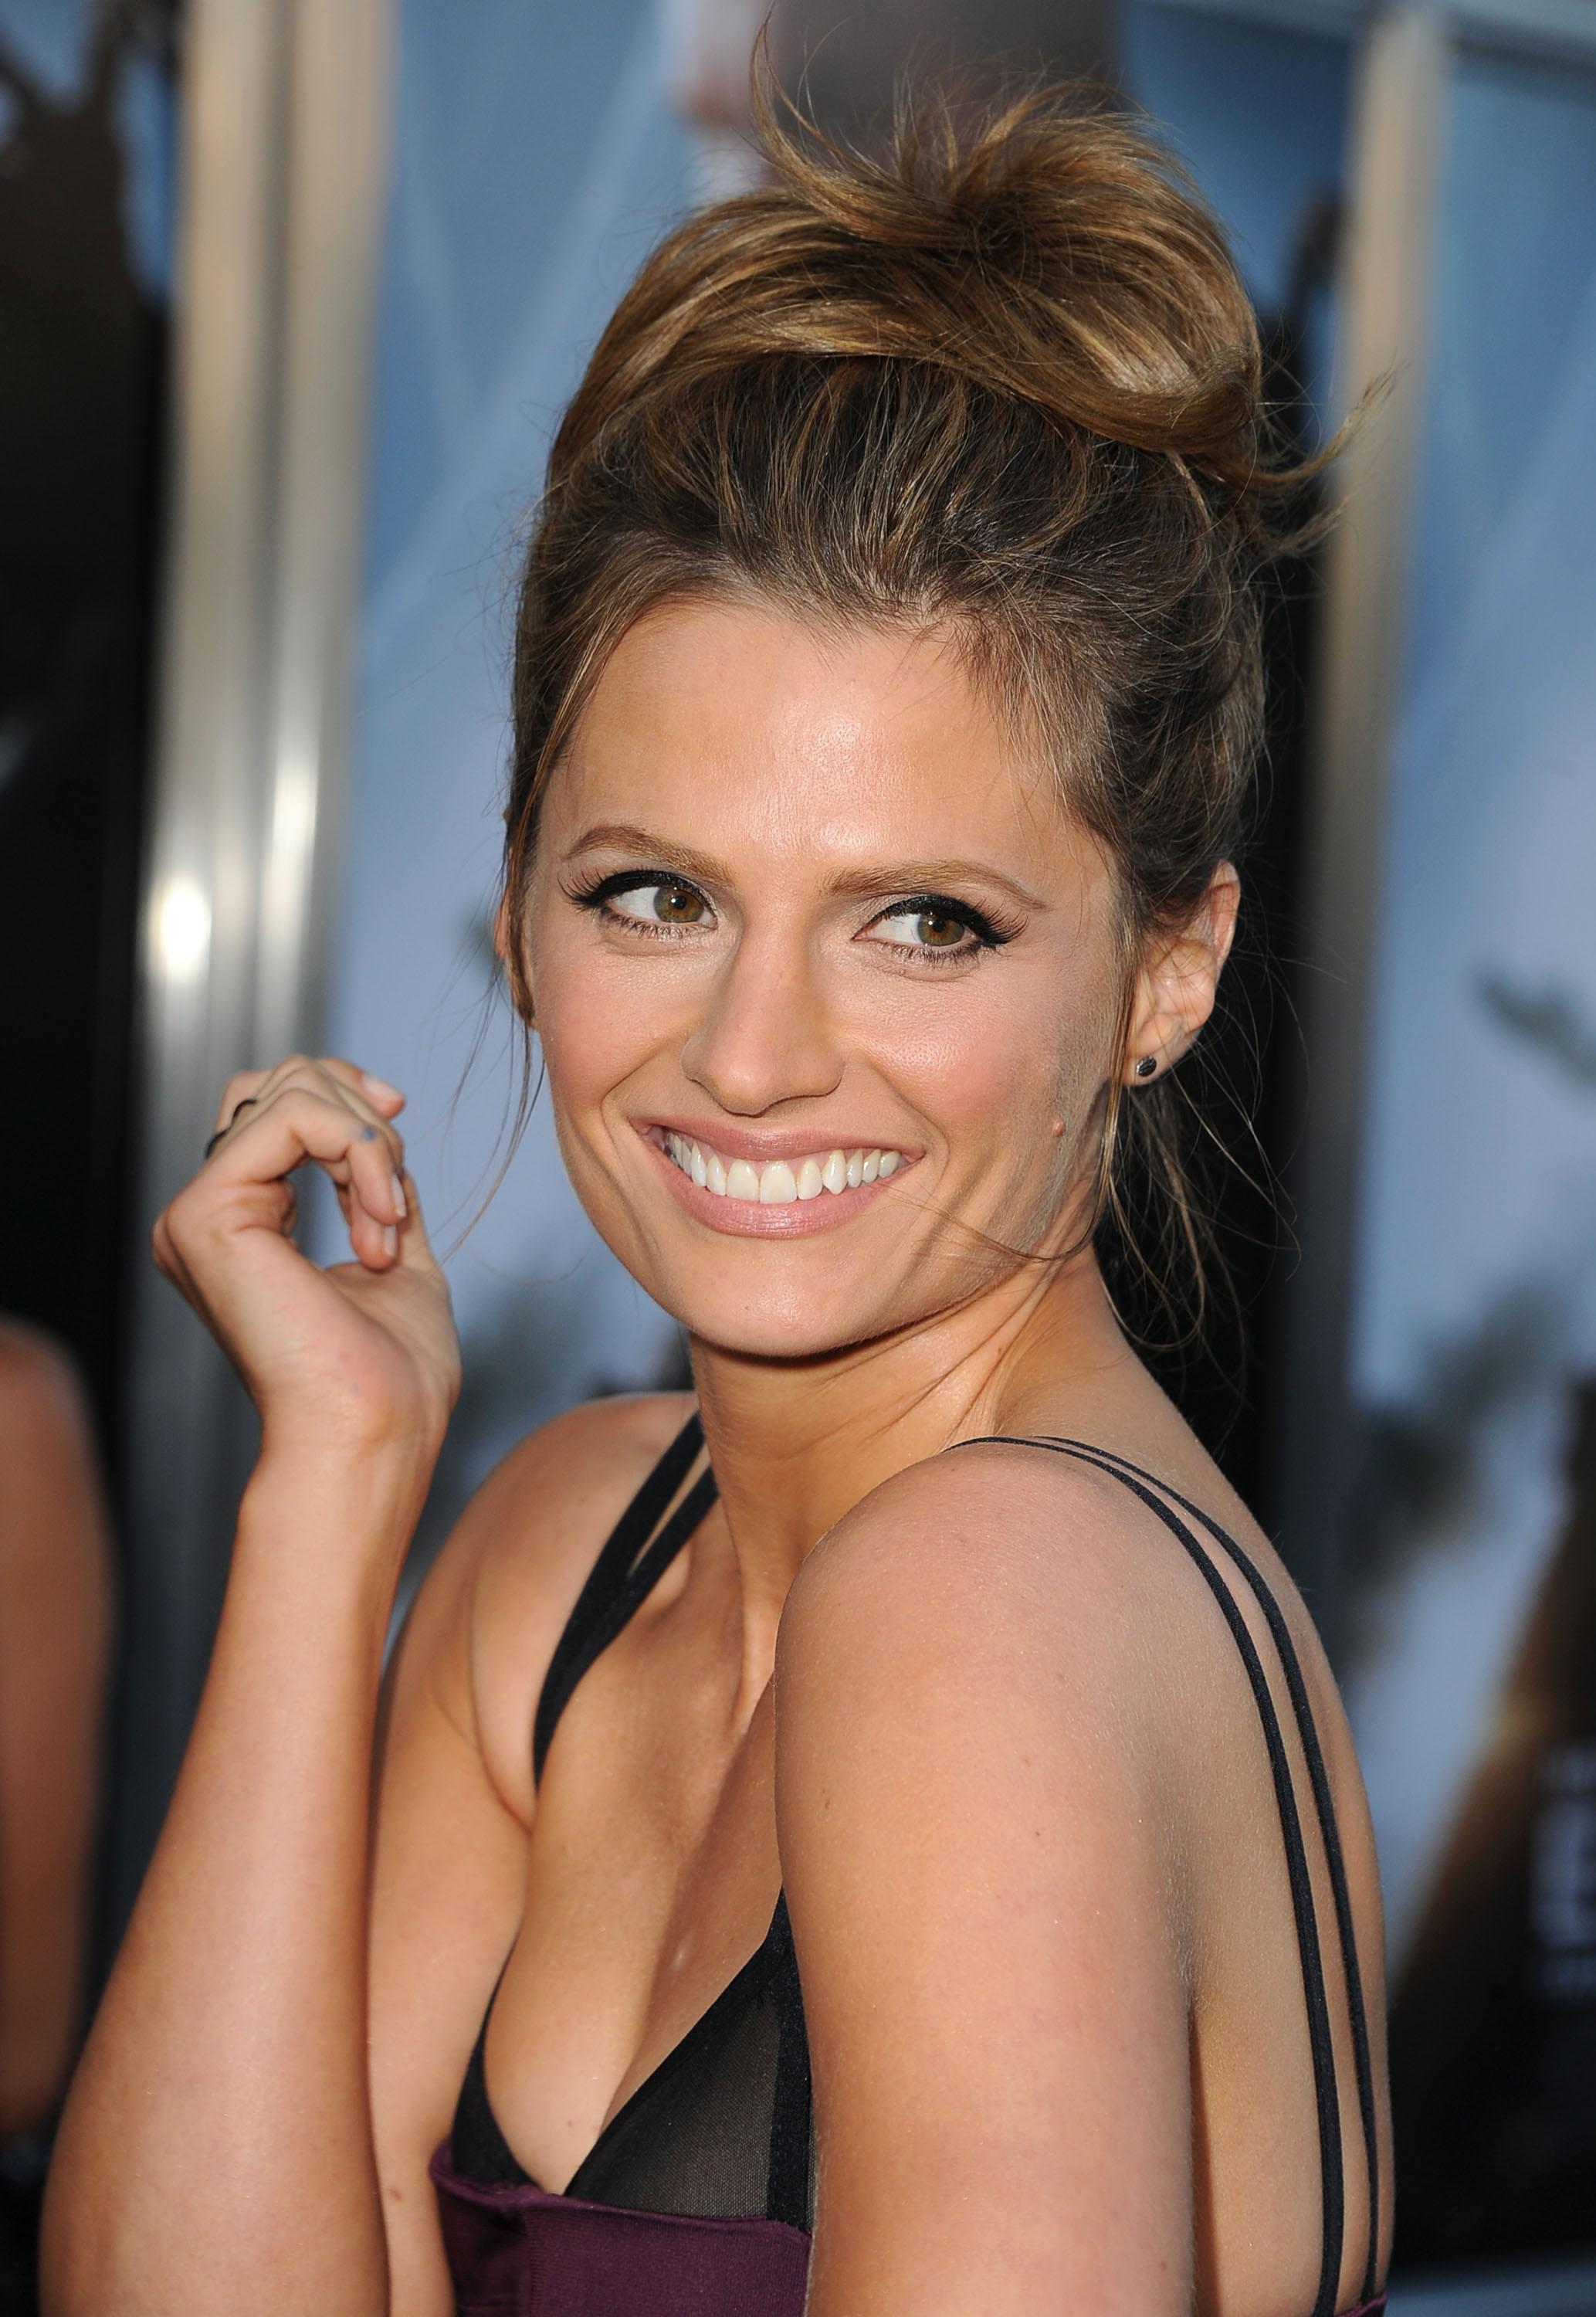 Apologise, but stana katic cum ansikts pics are